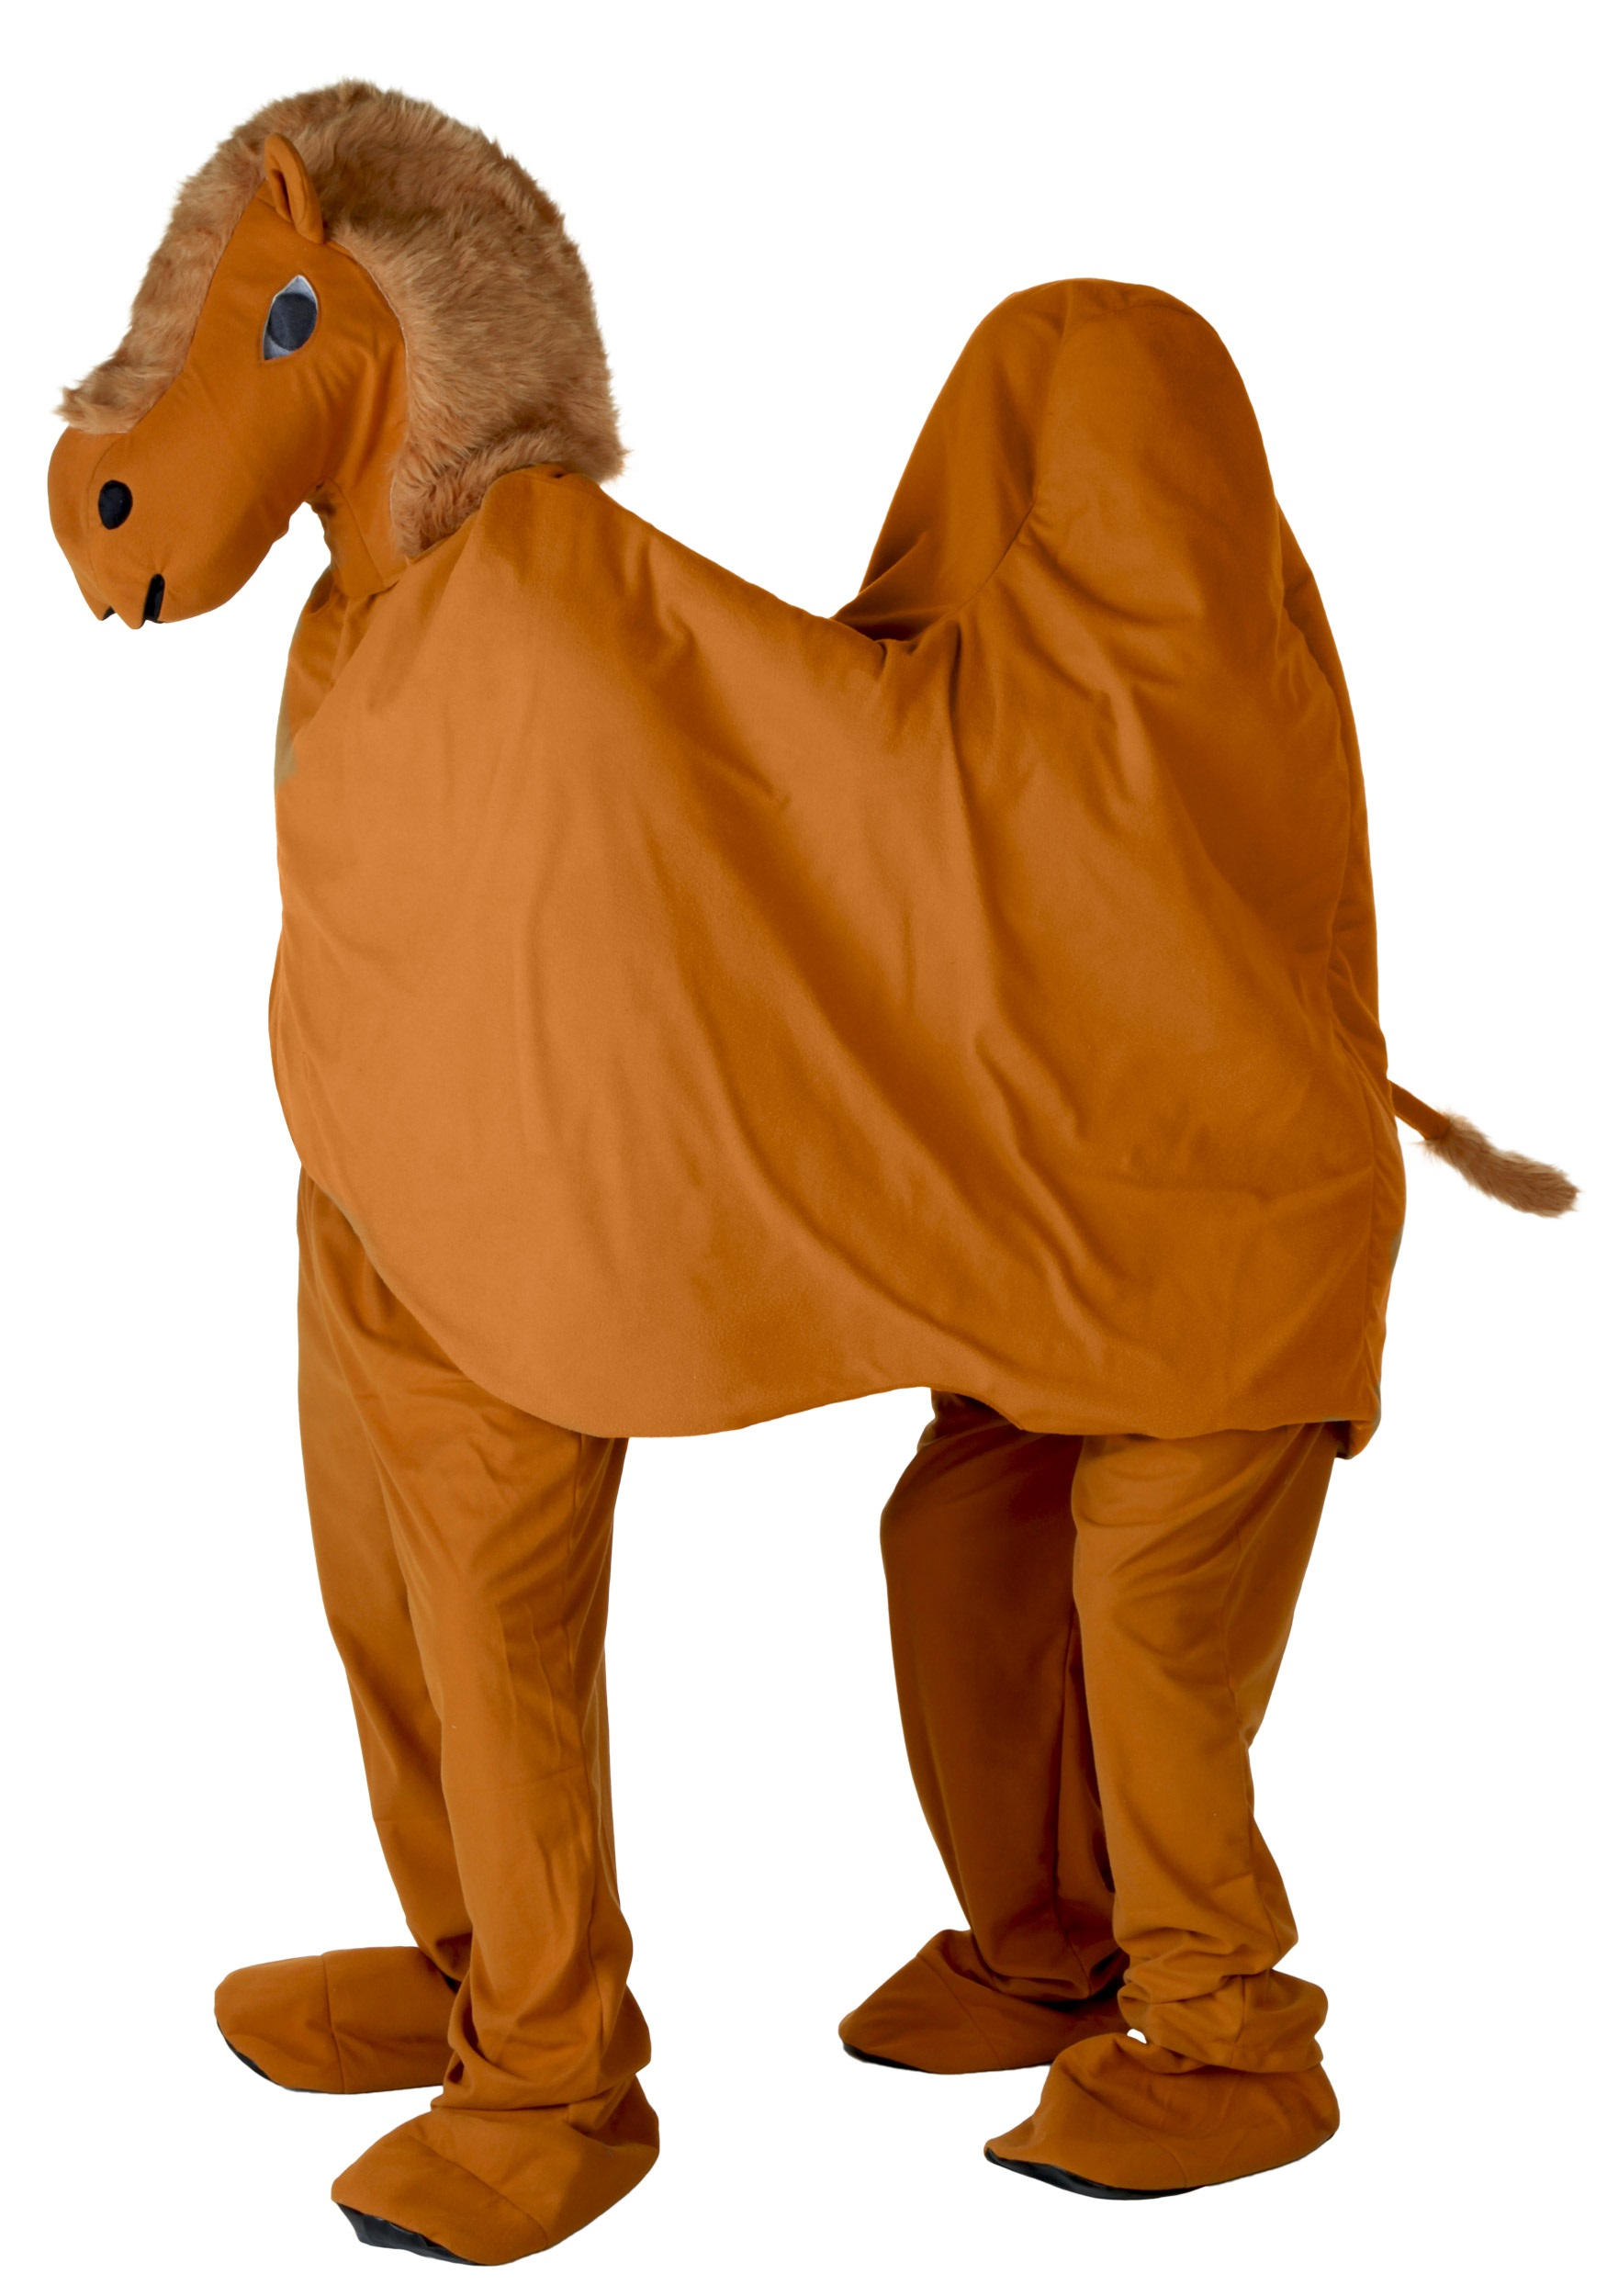 Two Person Camel Costume  sc 1 st  Walmart & Two Person Camel Costume - Walmart.com